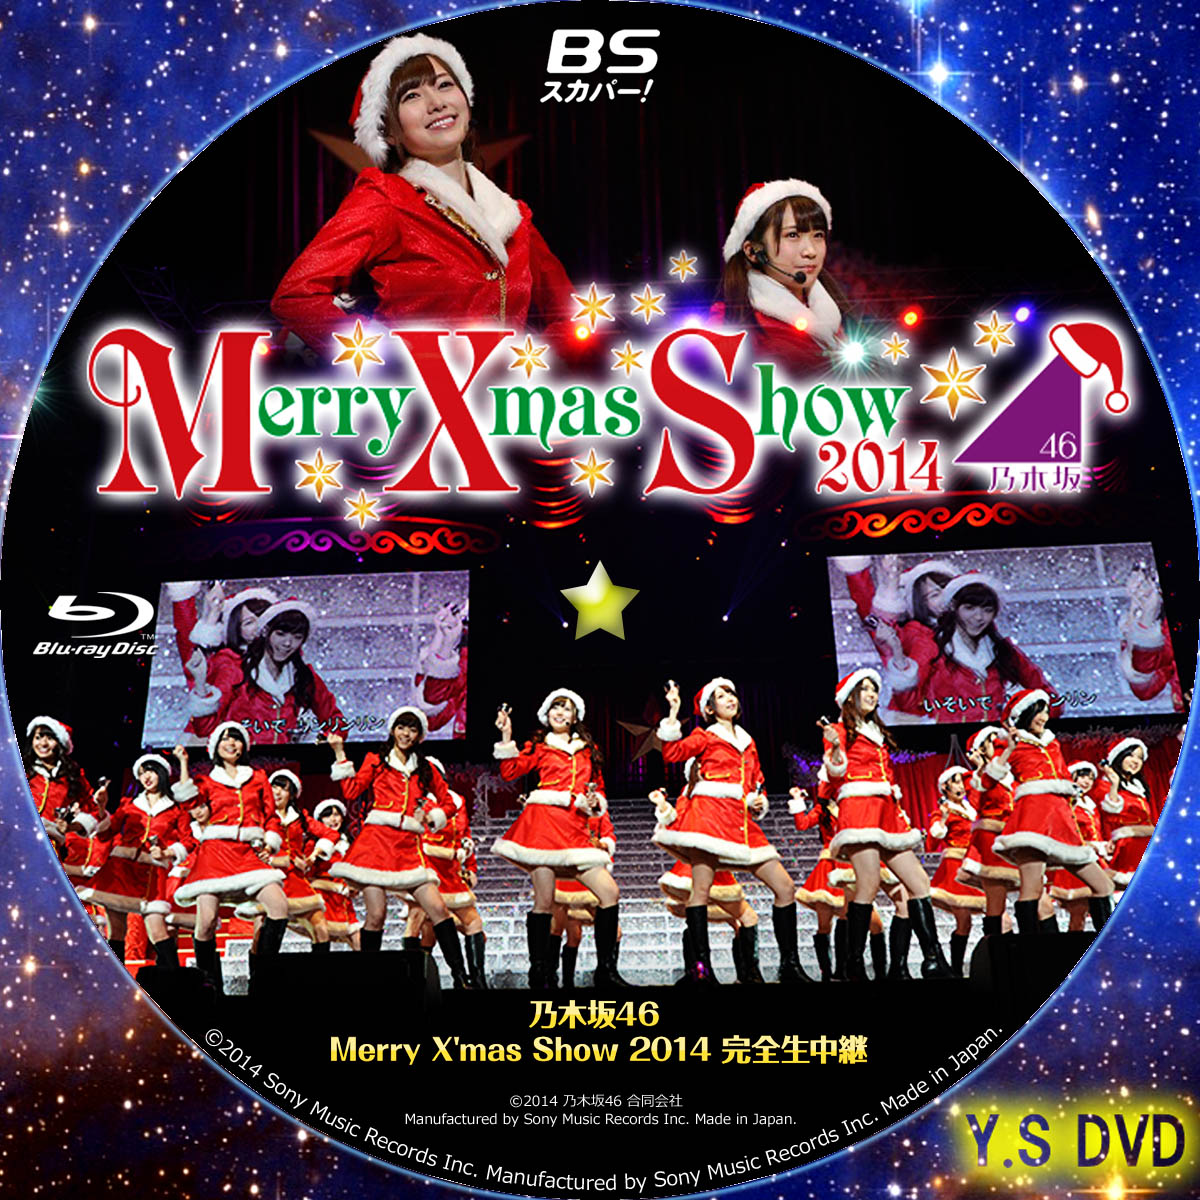 how to find year of dvd